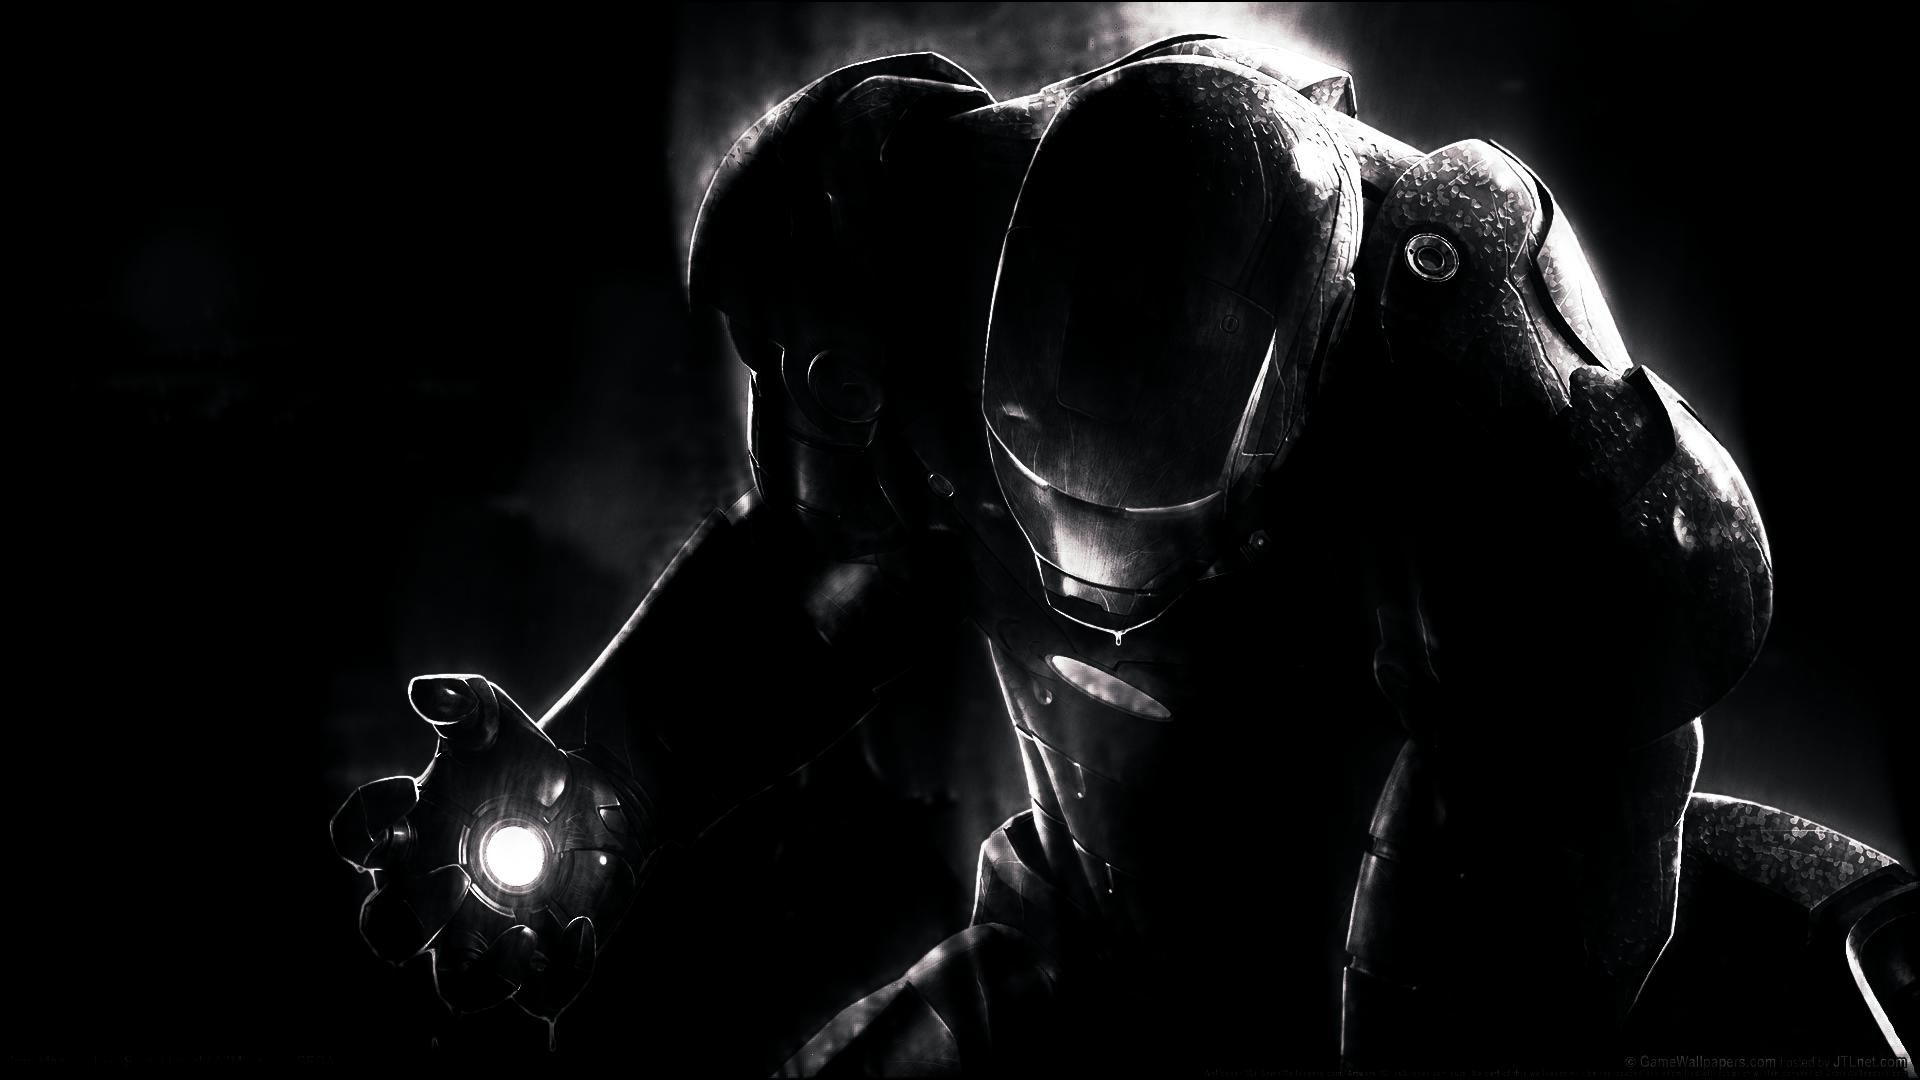 iron man full hd wallpaper 1920x1080